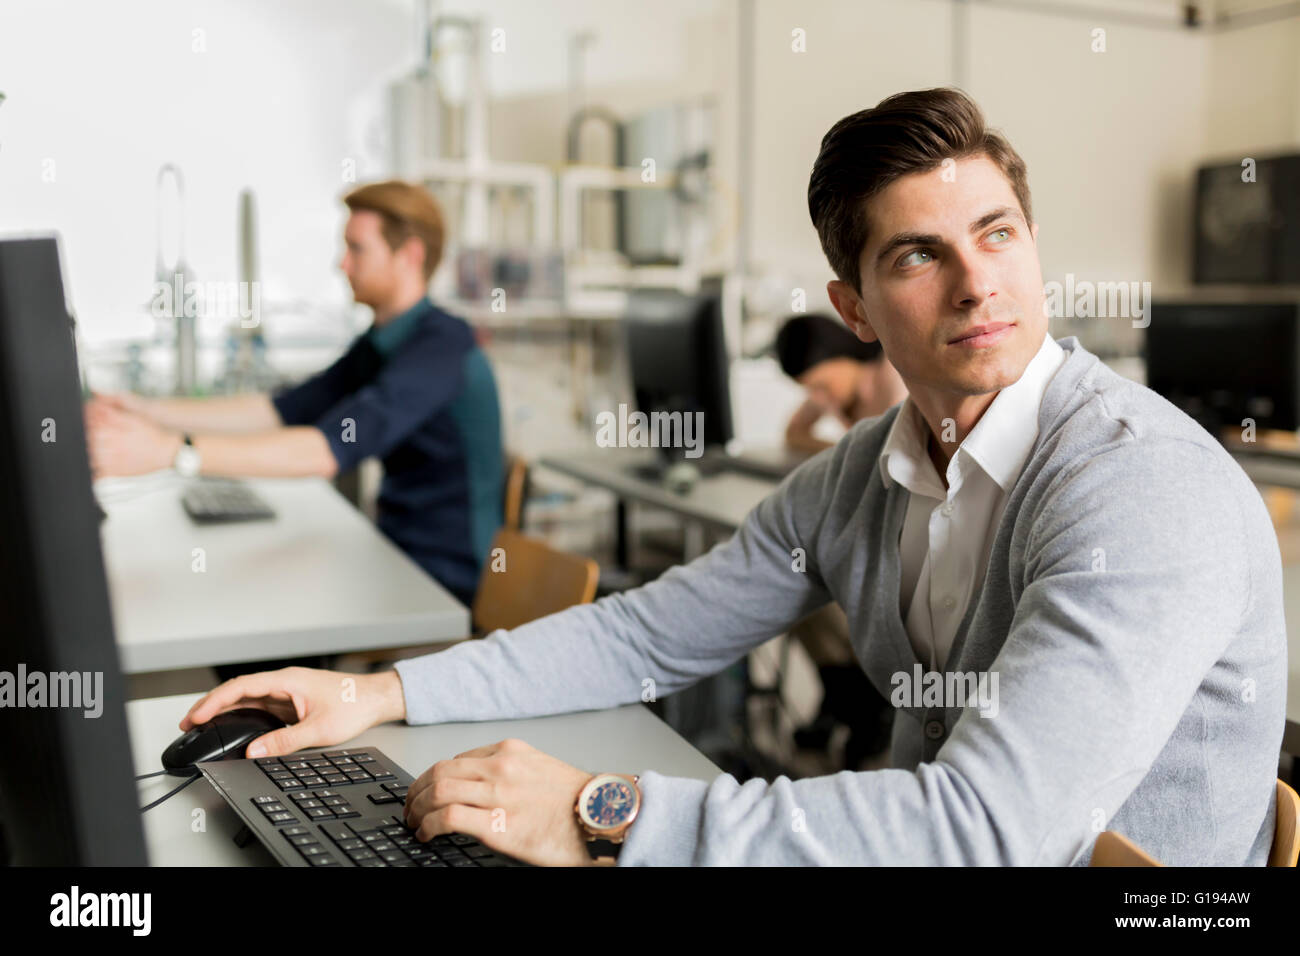 Young handsome student using computer in classroom Photo Stock